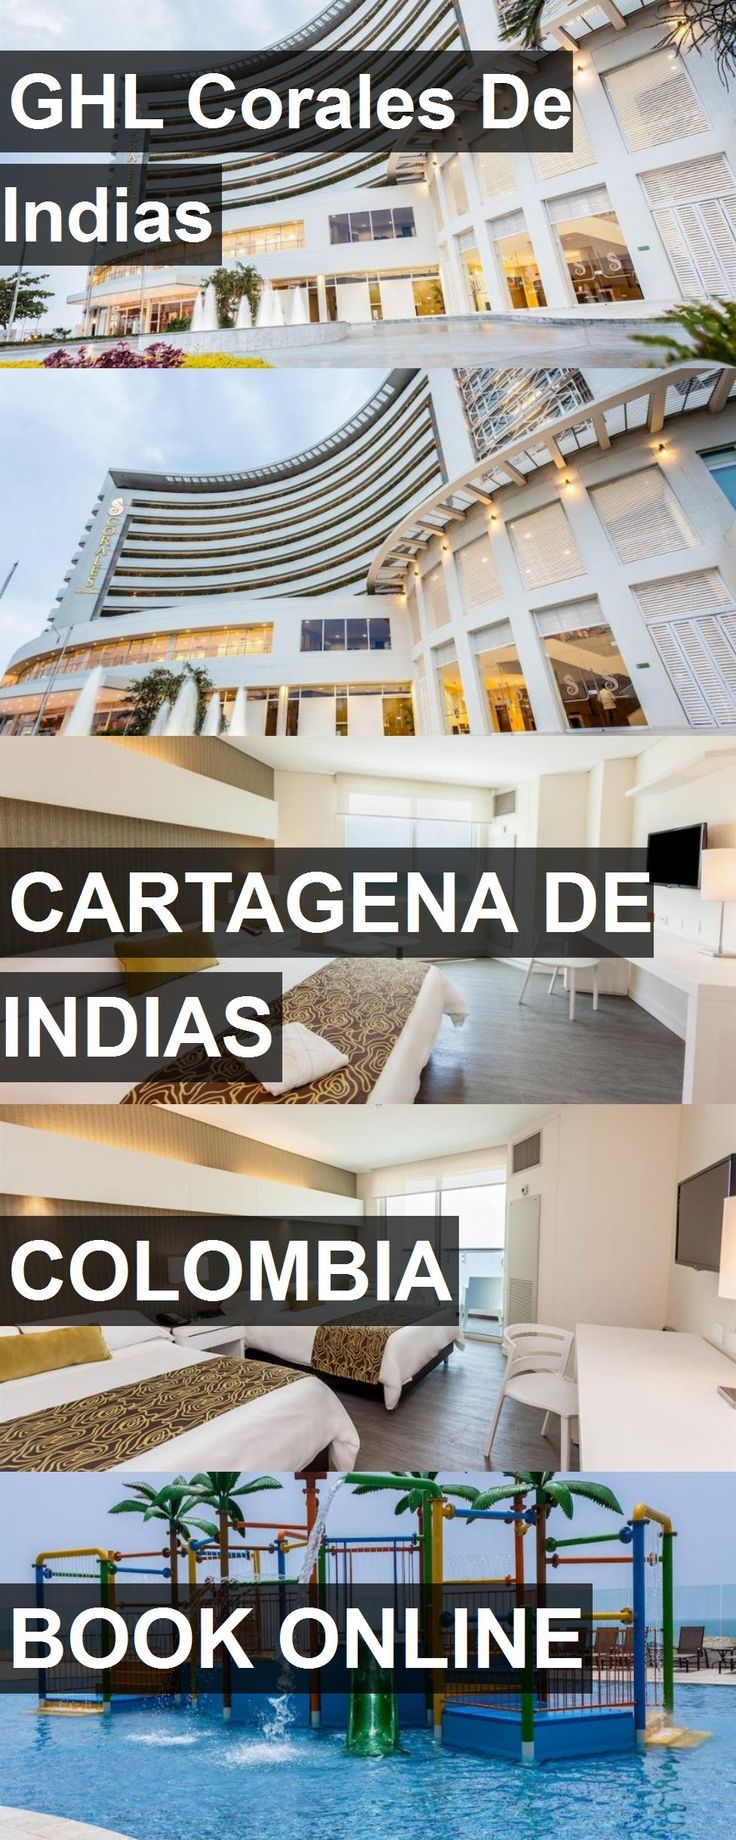 Hotel GHL Corales De Indias in Cartagena de Indias, Colombia. For more information, photos, reviews and best prices please follow the link. #Colombia #CartagenadeIndias #travel #vacation #hotel